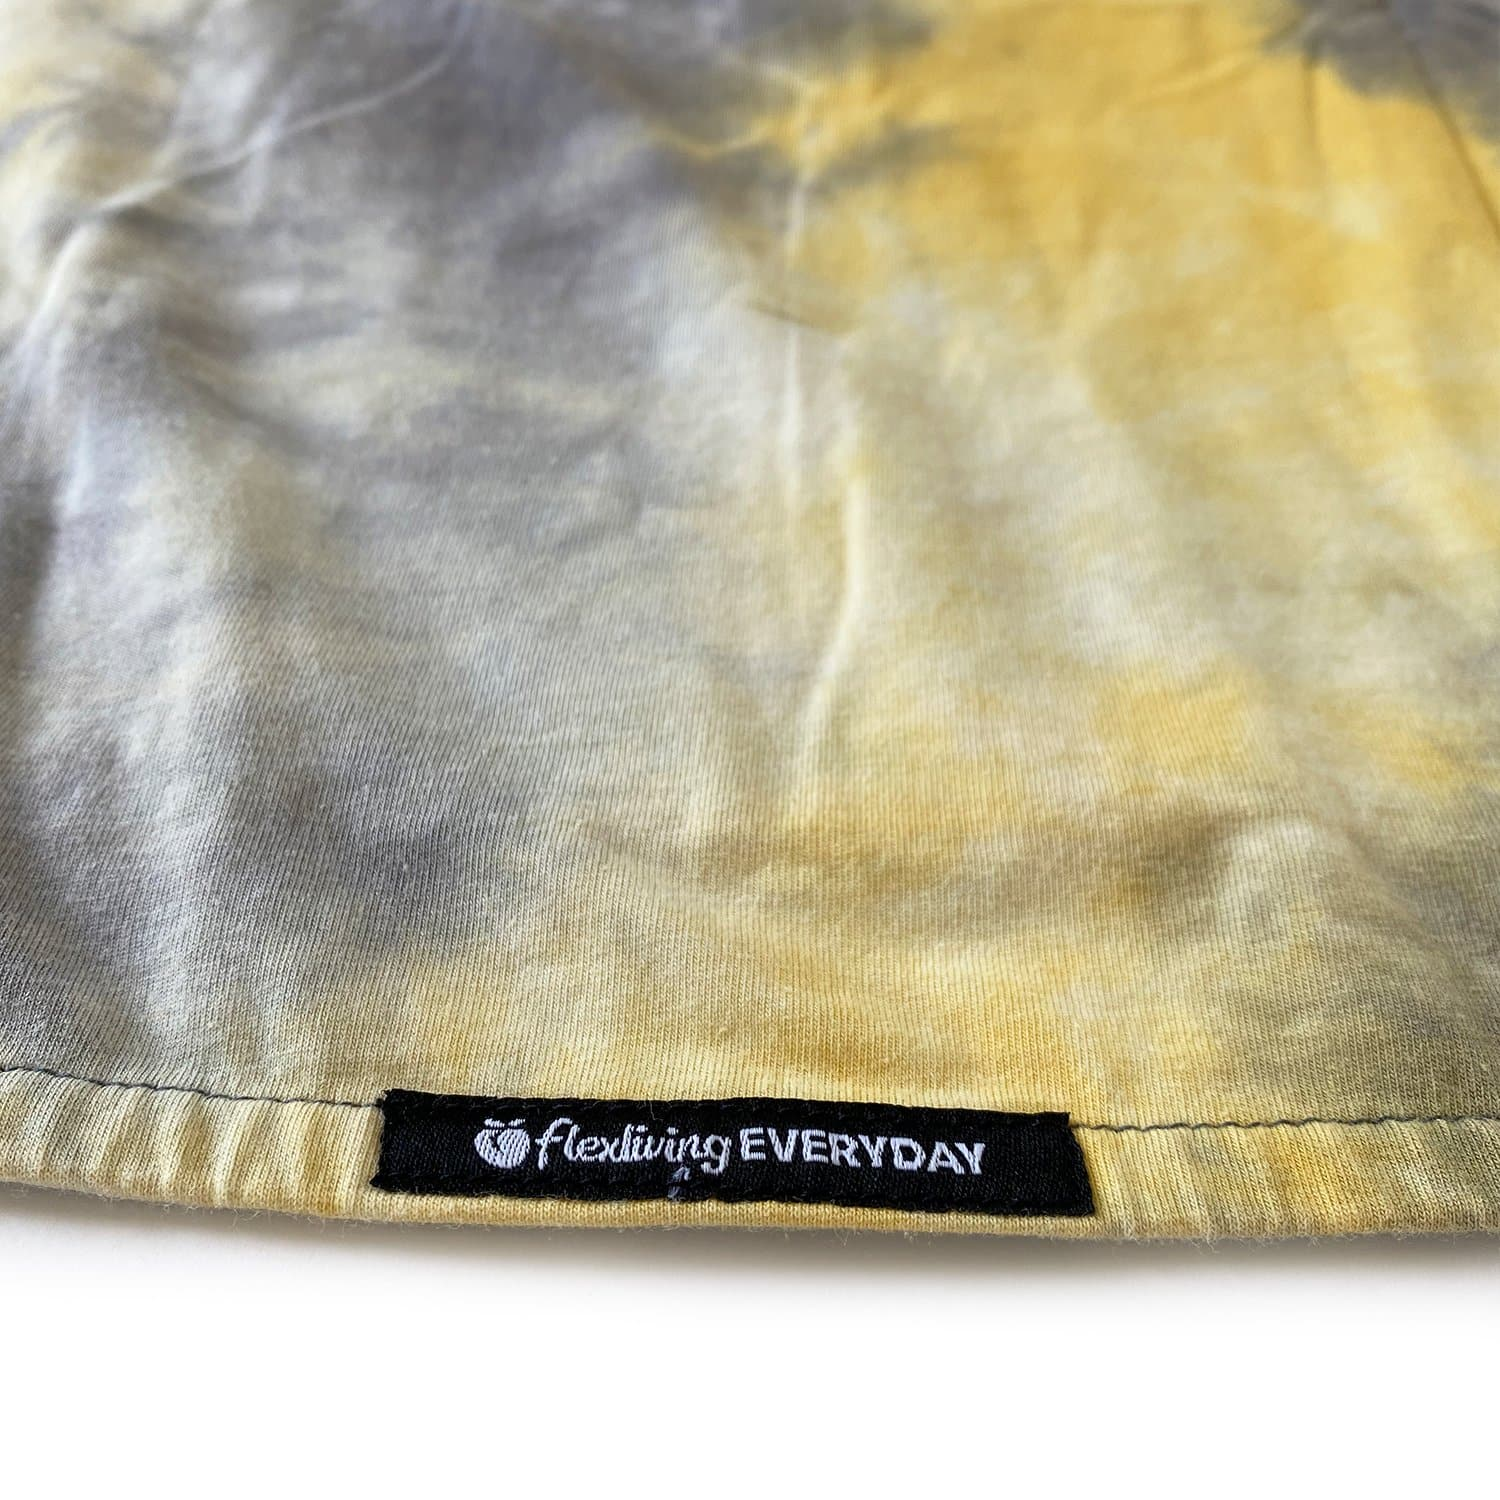 Men's EVERYDAY Acid Wash Tee - Tie Dye Yellow